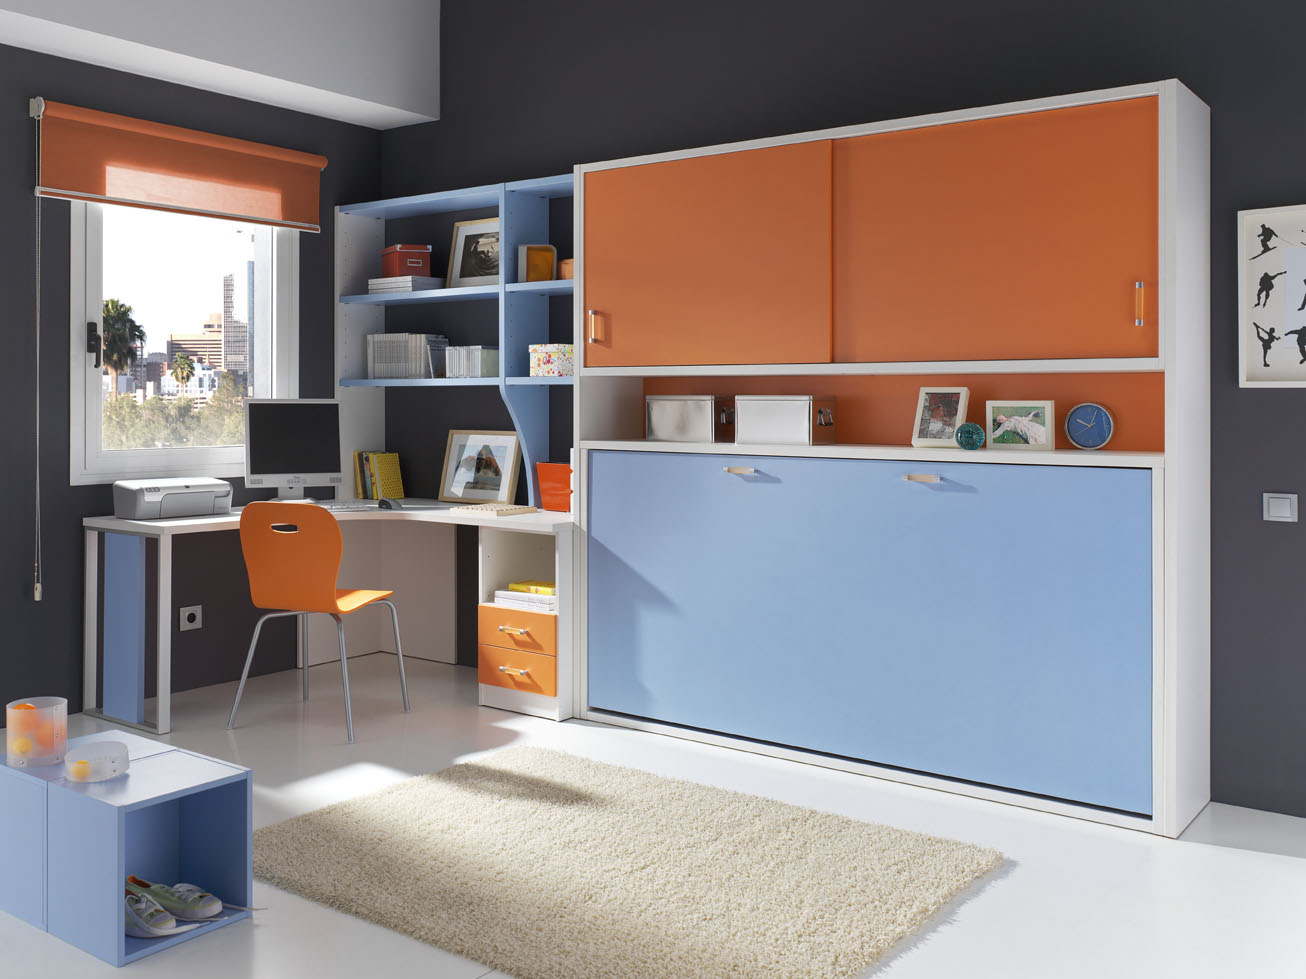 Ambientes juveniles muebles orts blog for Mueble joven